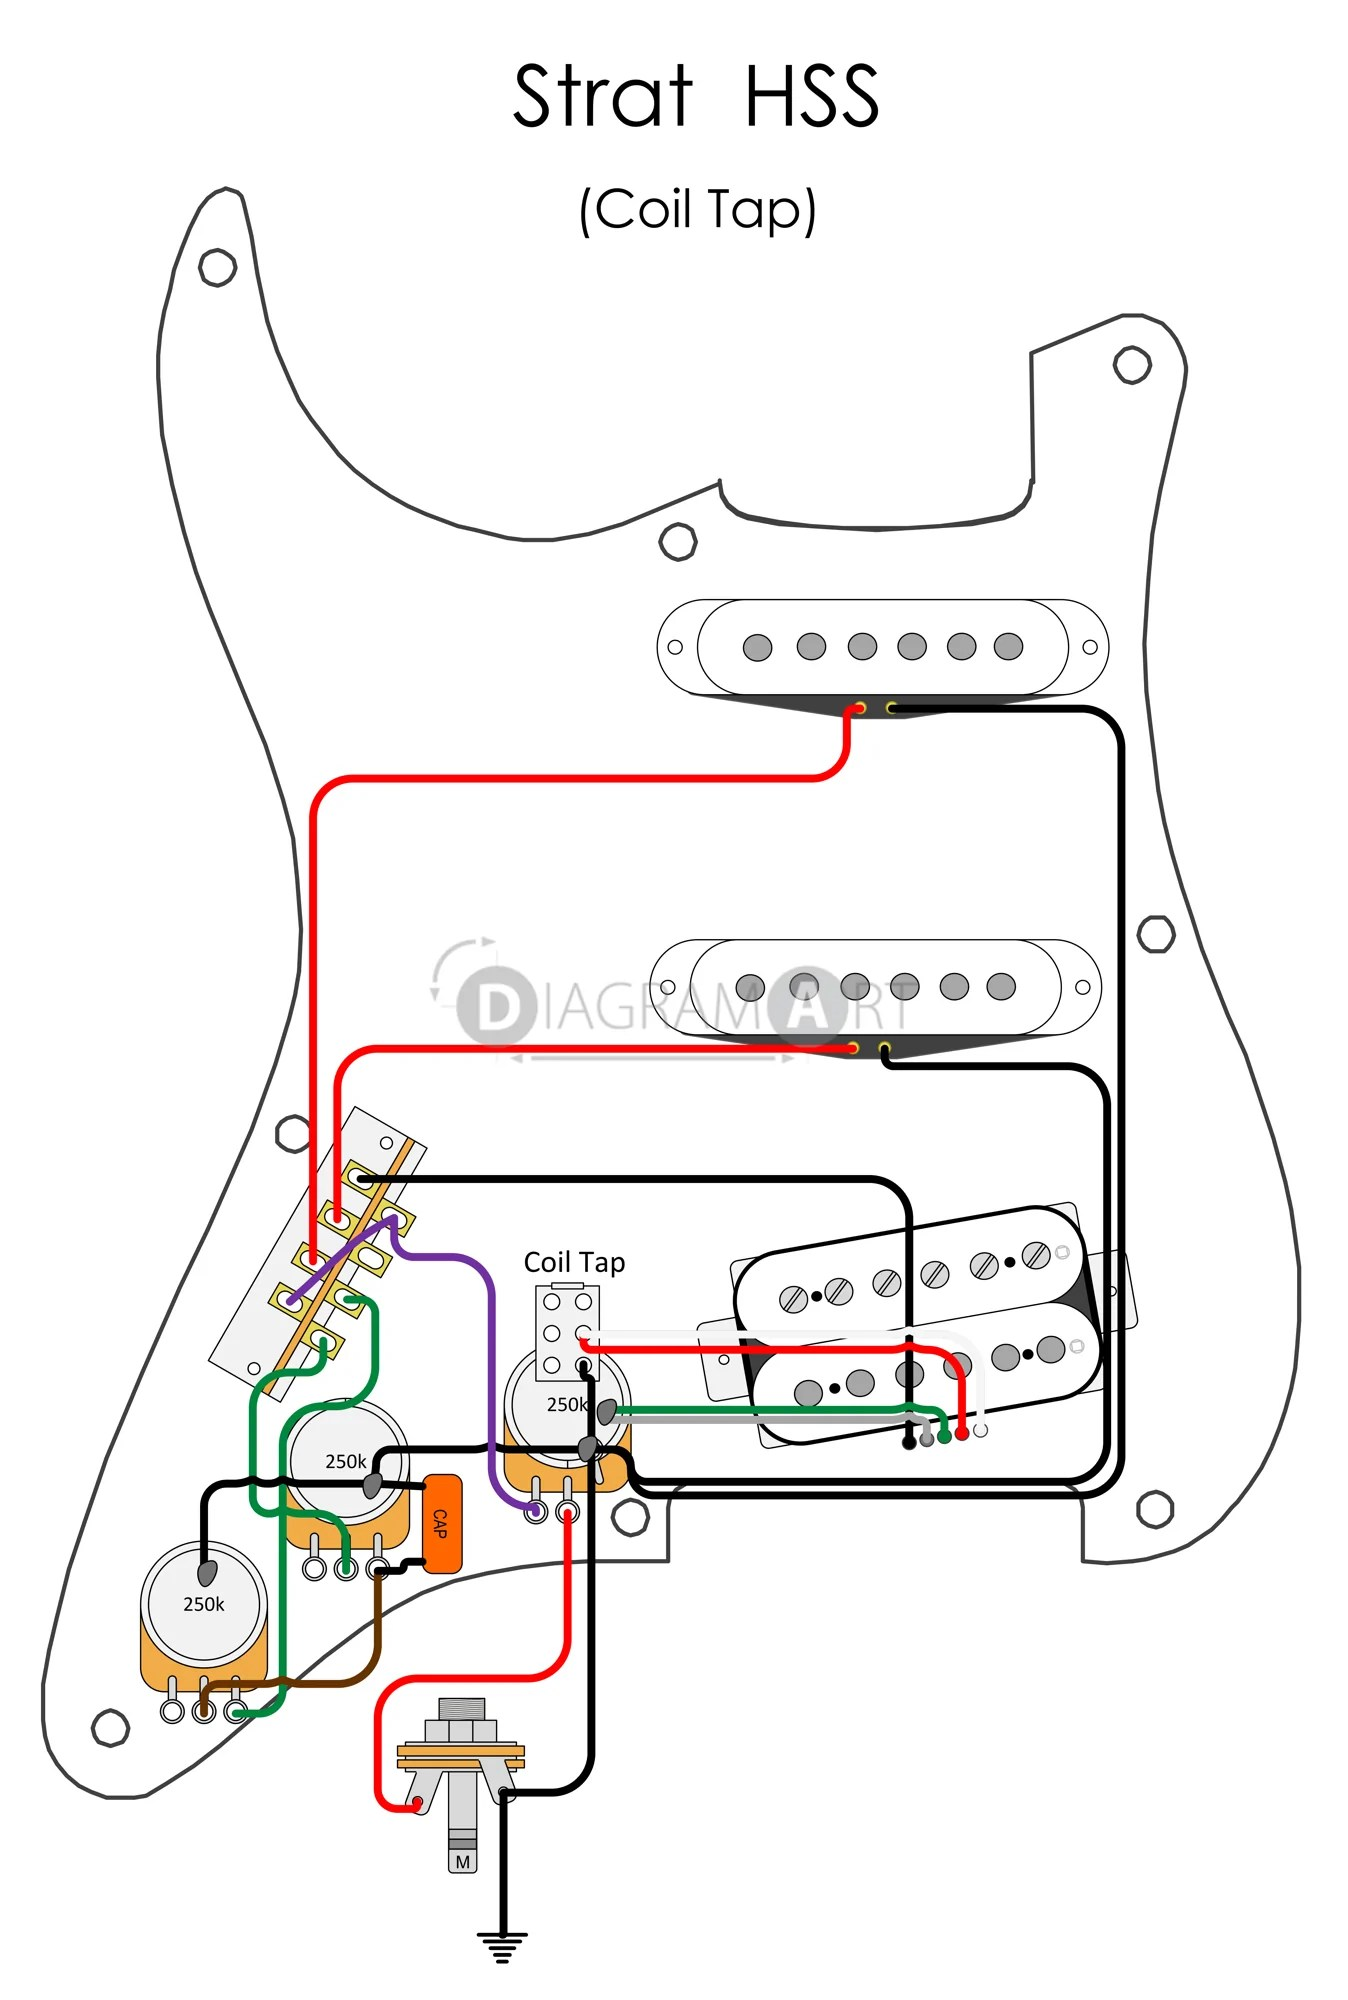 hss coil split wiring diagram automotive wiring diagrams seymour duncan coil split wiring diagrams coil split [ 1348 x 2000 Pixel ]